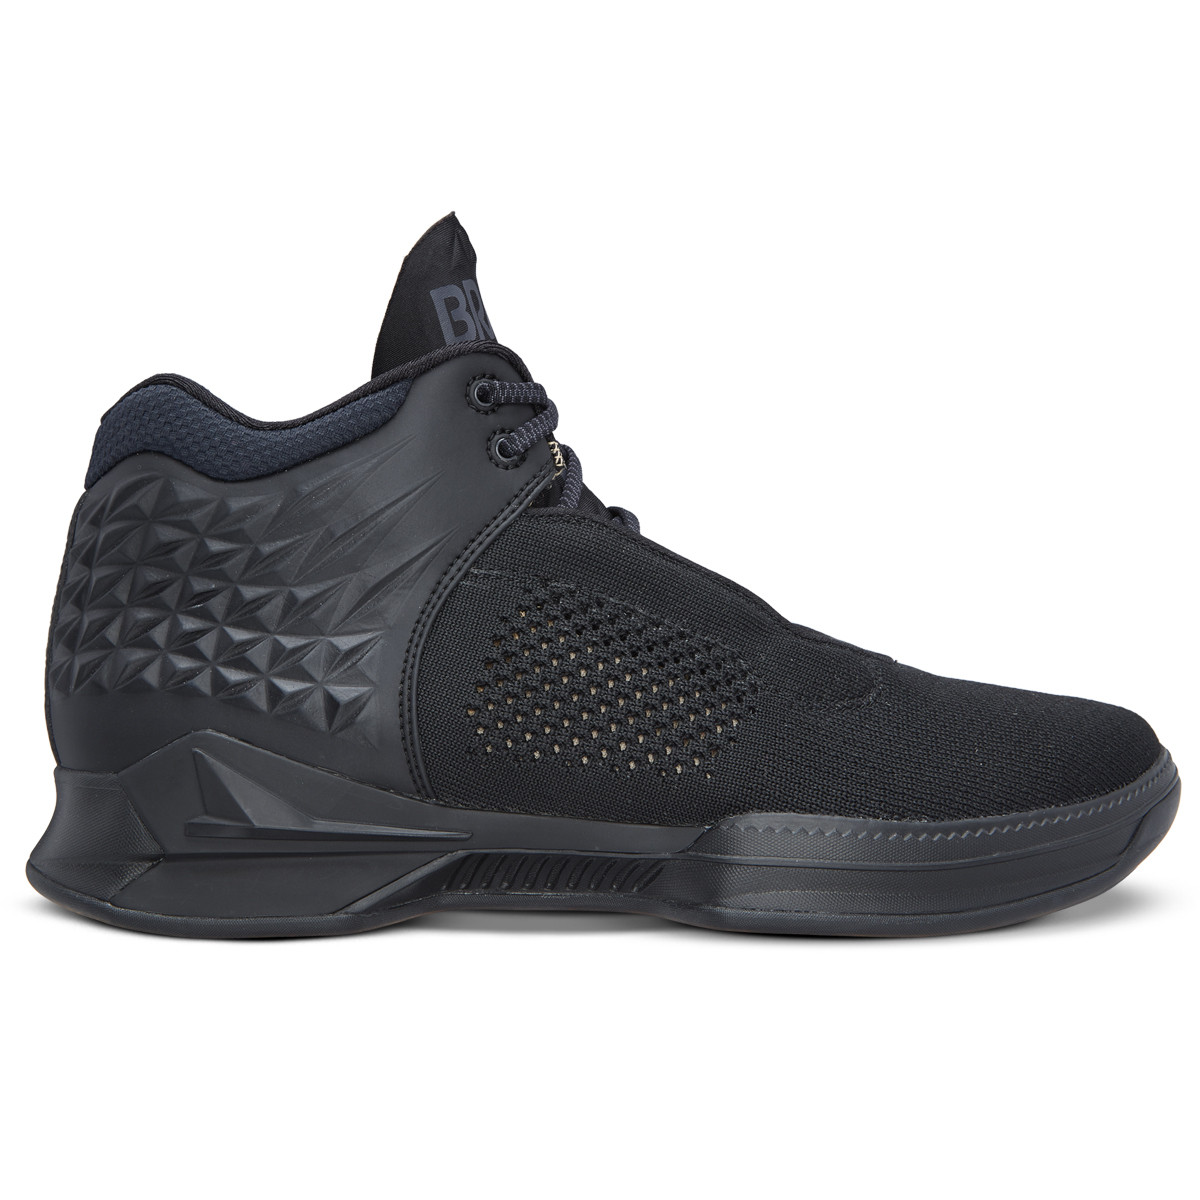 d712c04c08b The BrandBlack J Crossover 2 LMTD Pack is Available Now 4 - WearTesters